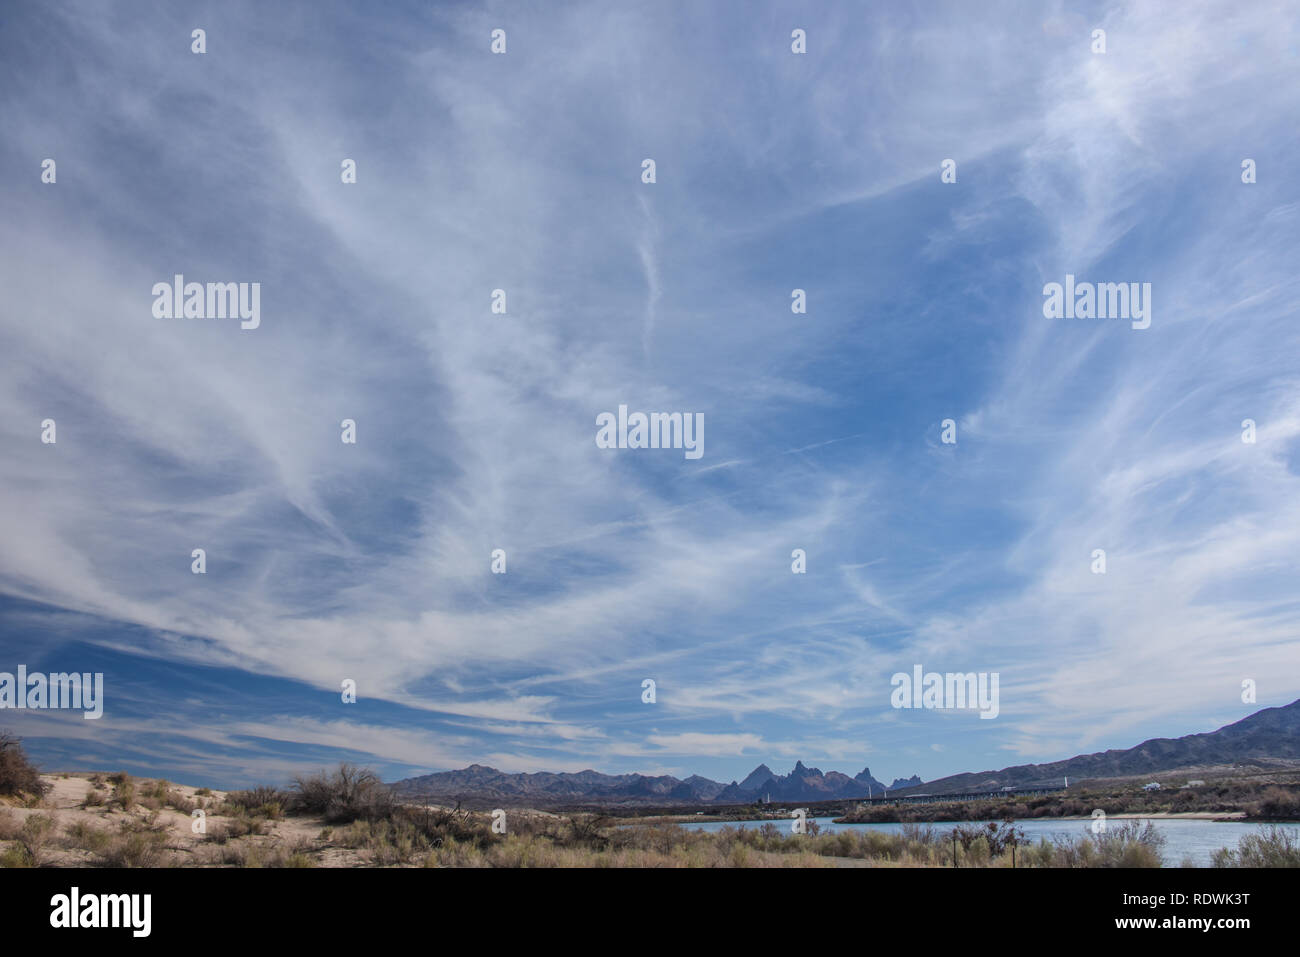 Wispy Clouds over Needles Mountains, California - Stock Image